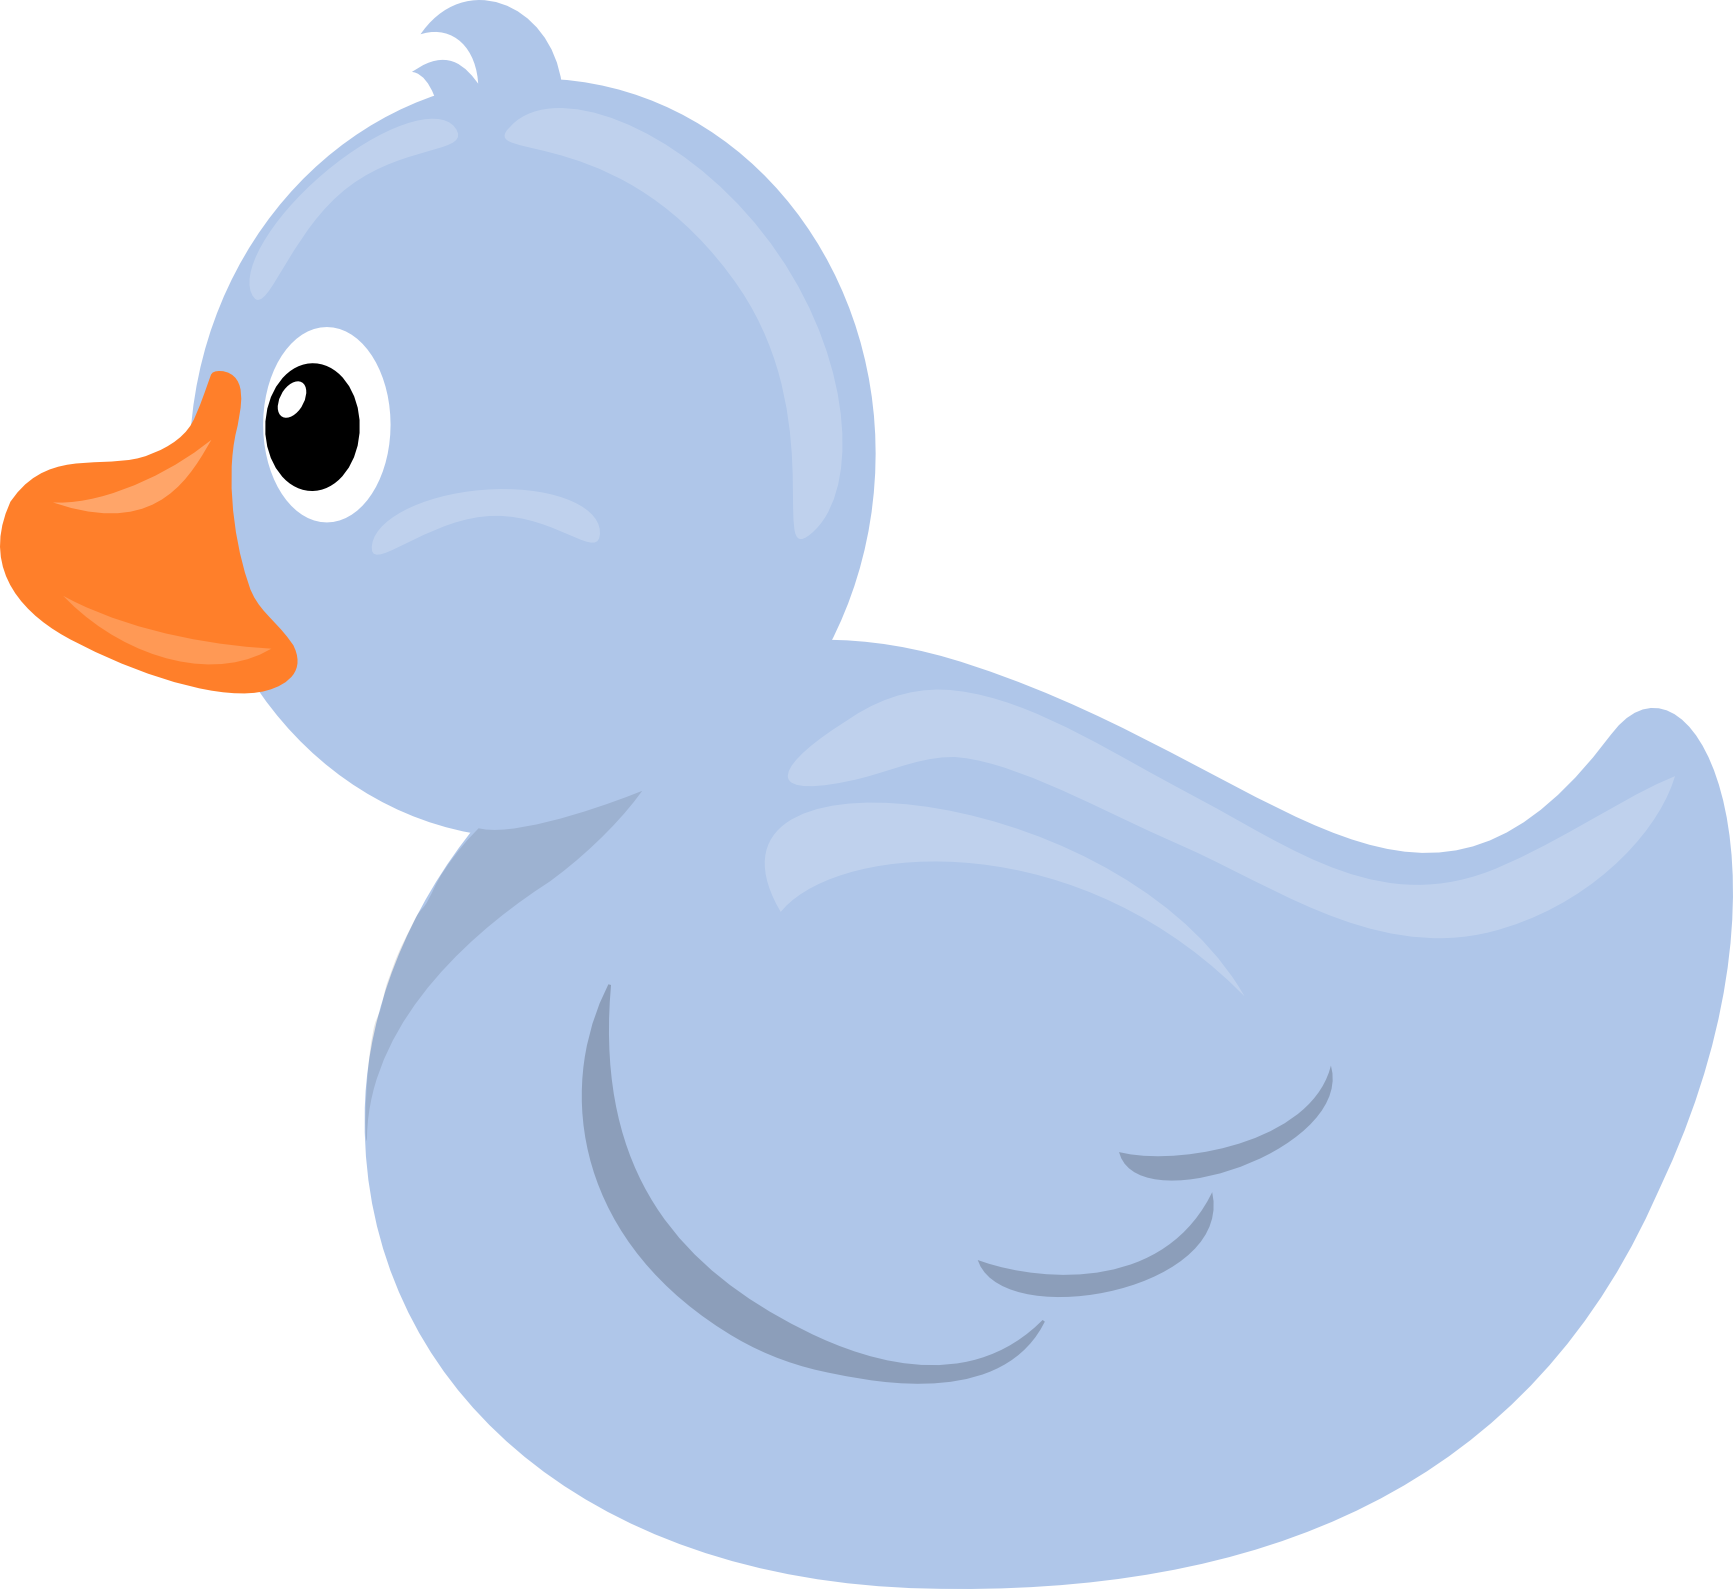 Angry rubber duck clipart.